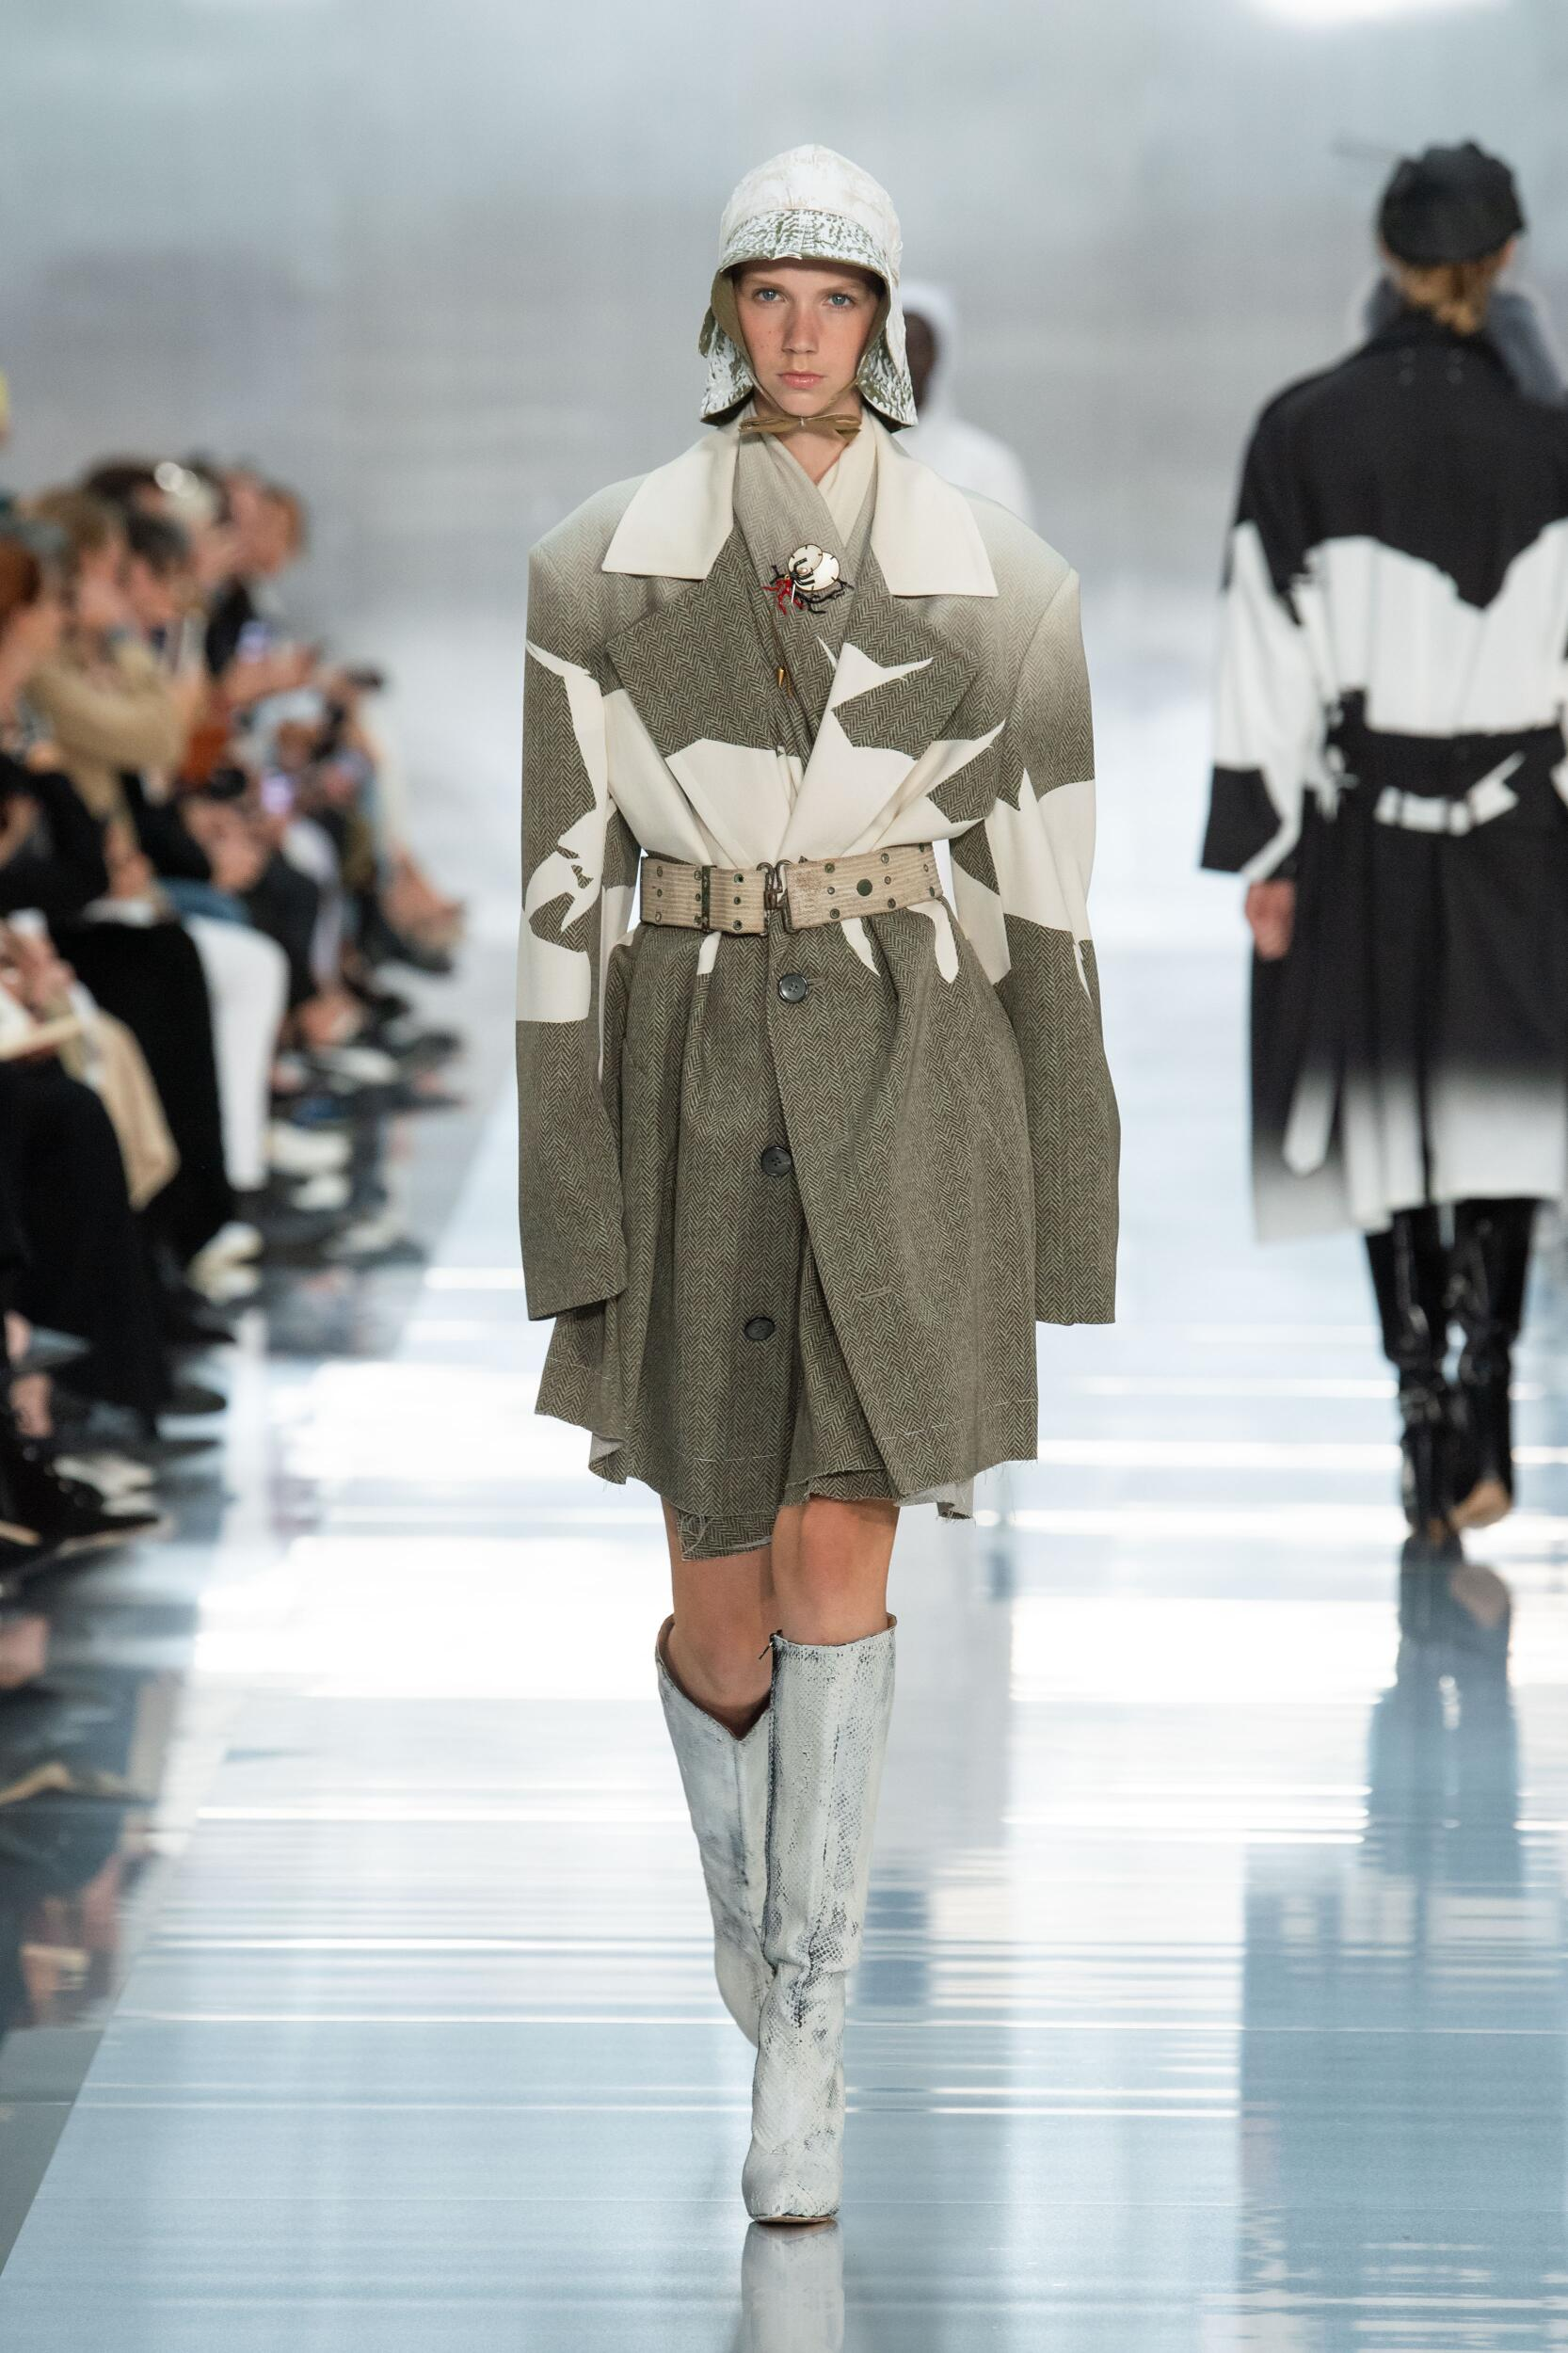 Maison Margiela SS 2020 Womenswear